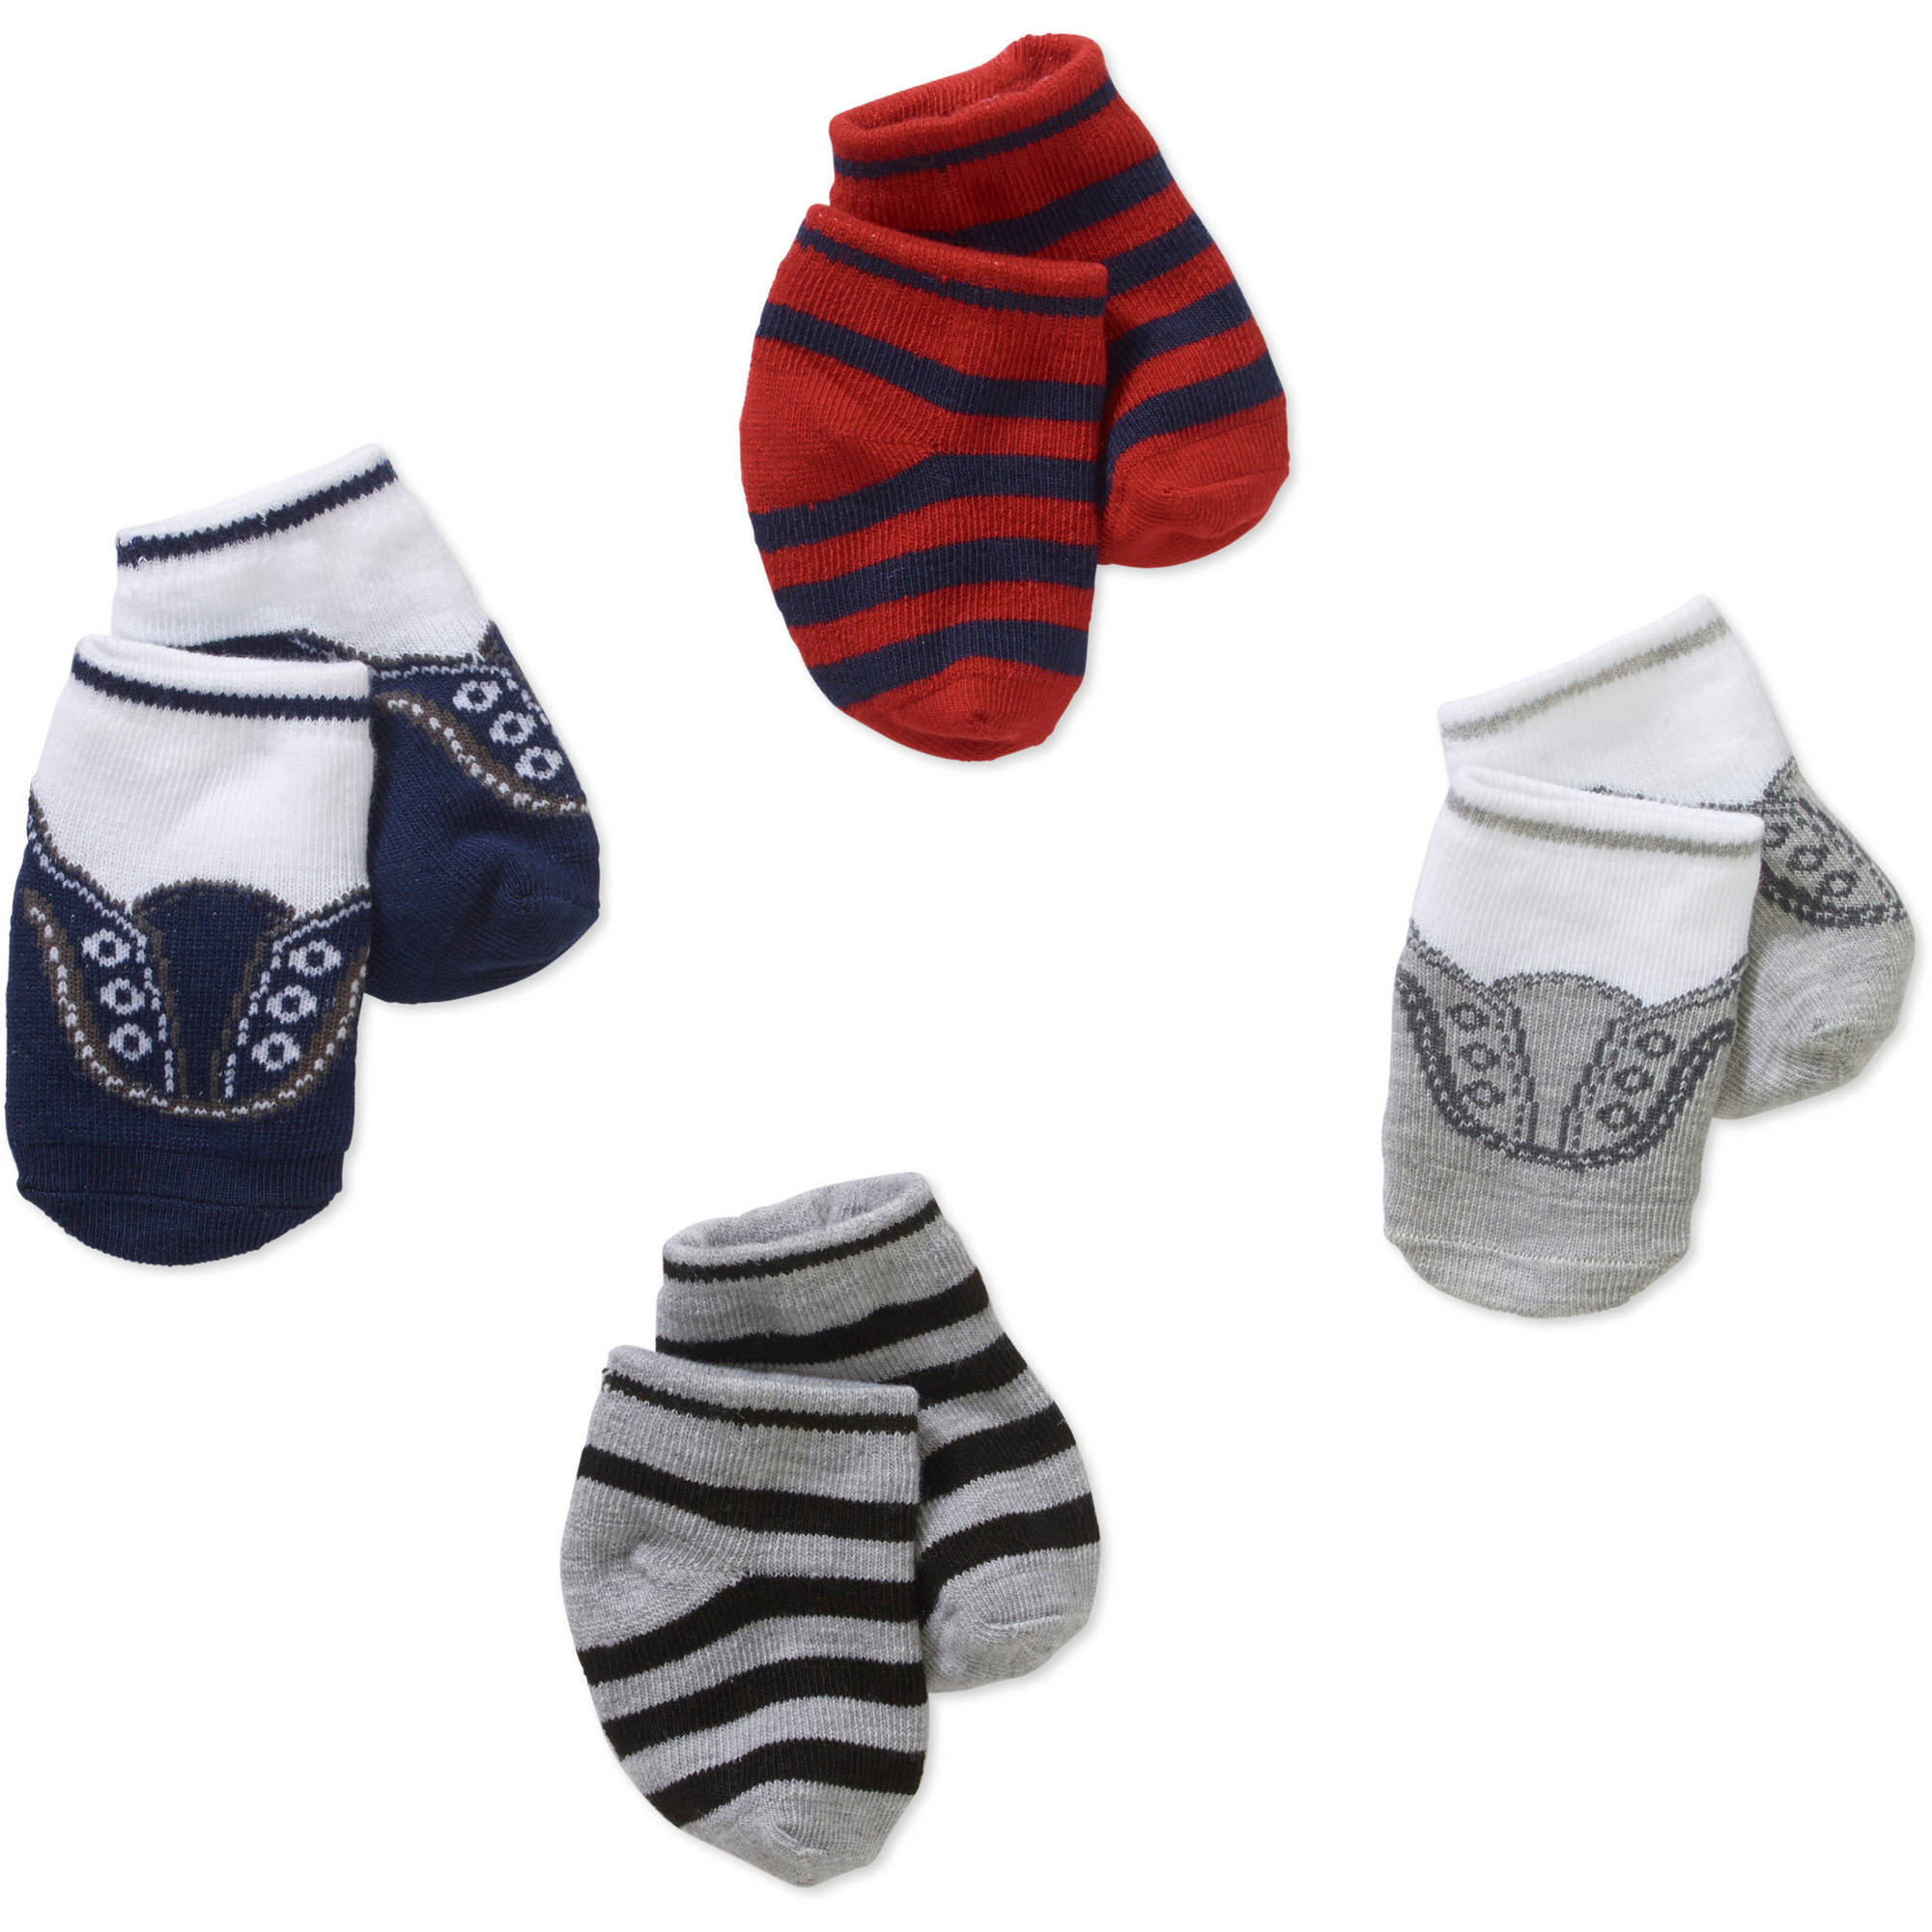 Newborn Baby Girl Stripes & Sneakers Socks Set - 4 Pack